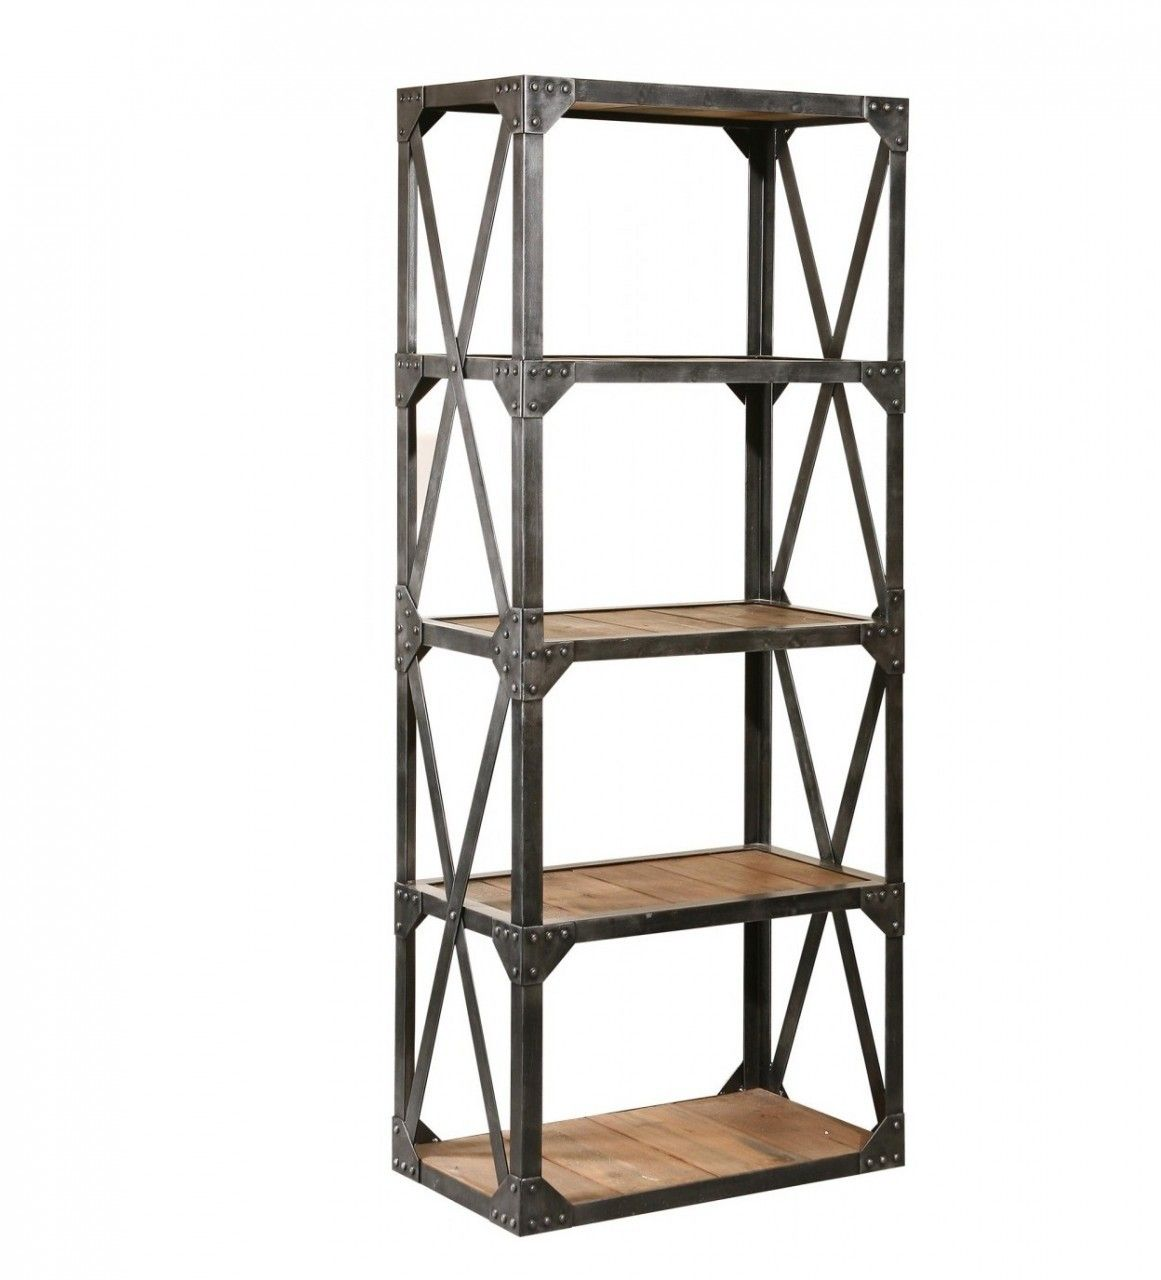 Lovely Iron and Wood Shelving